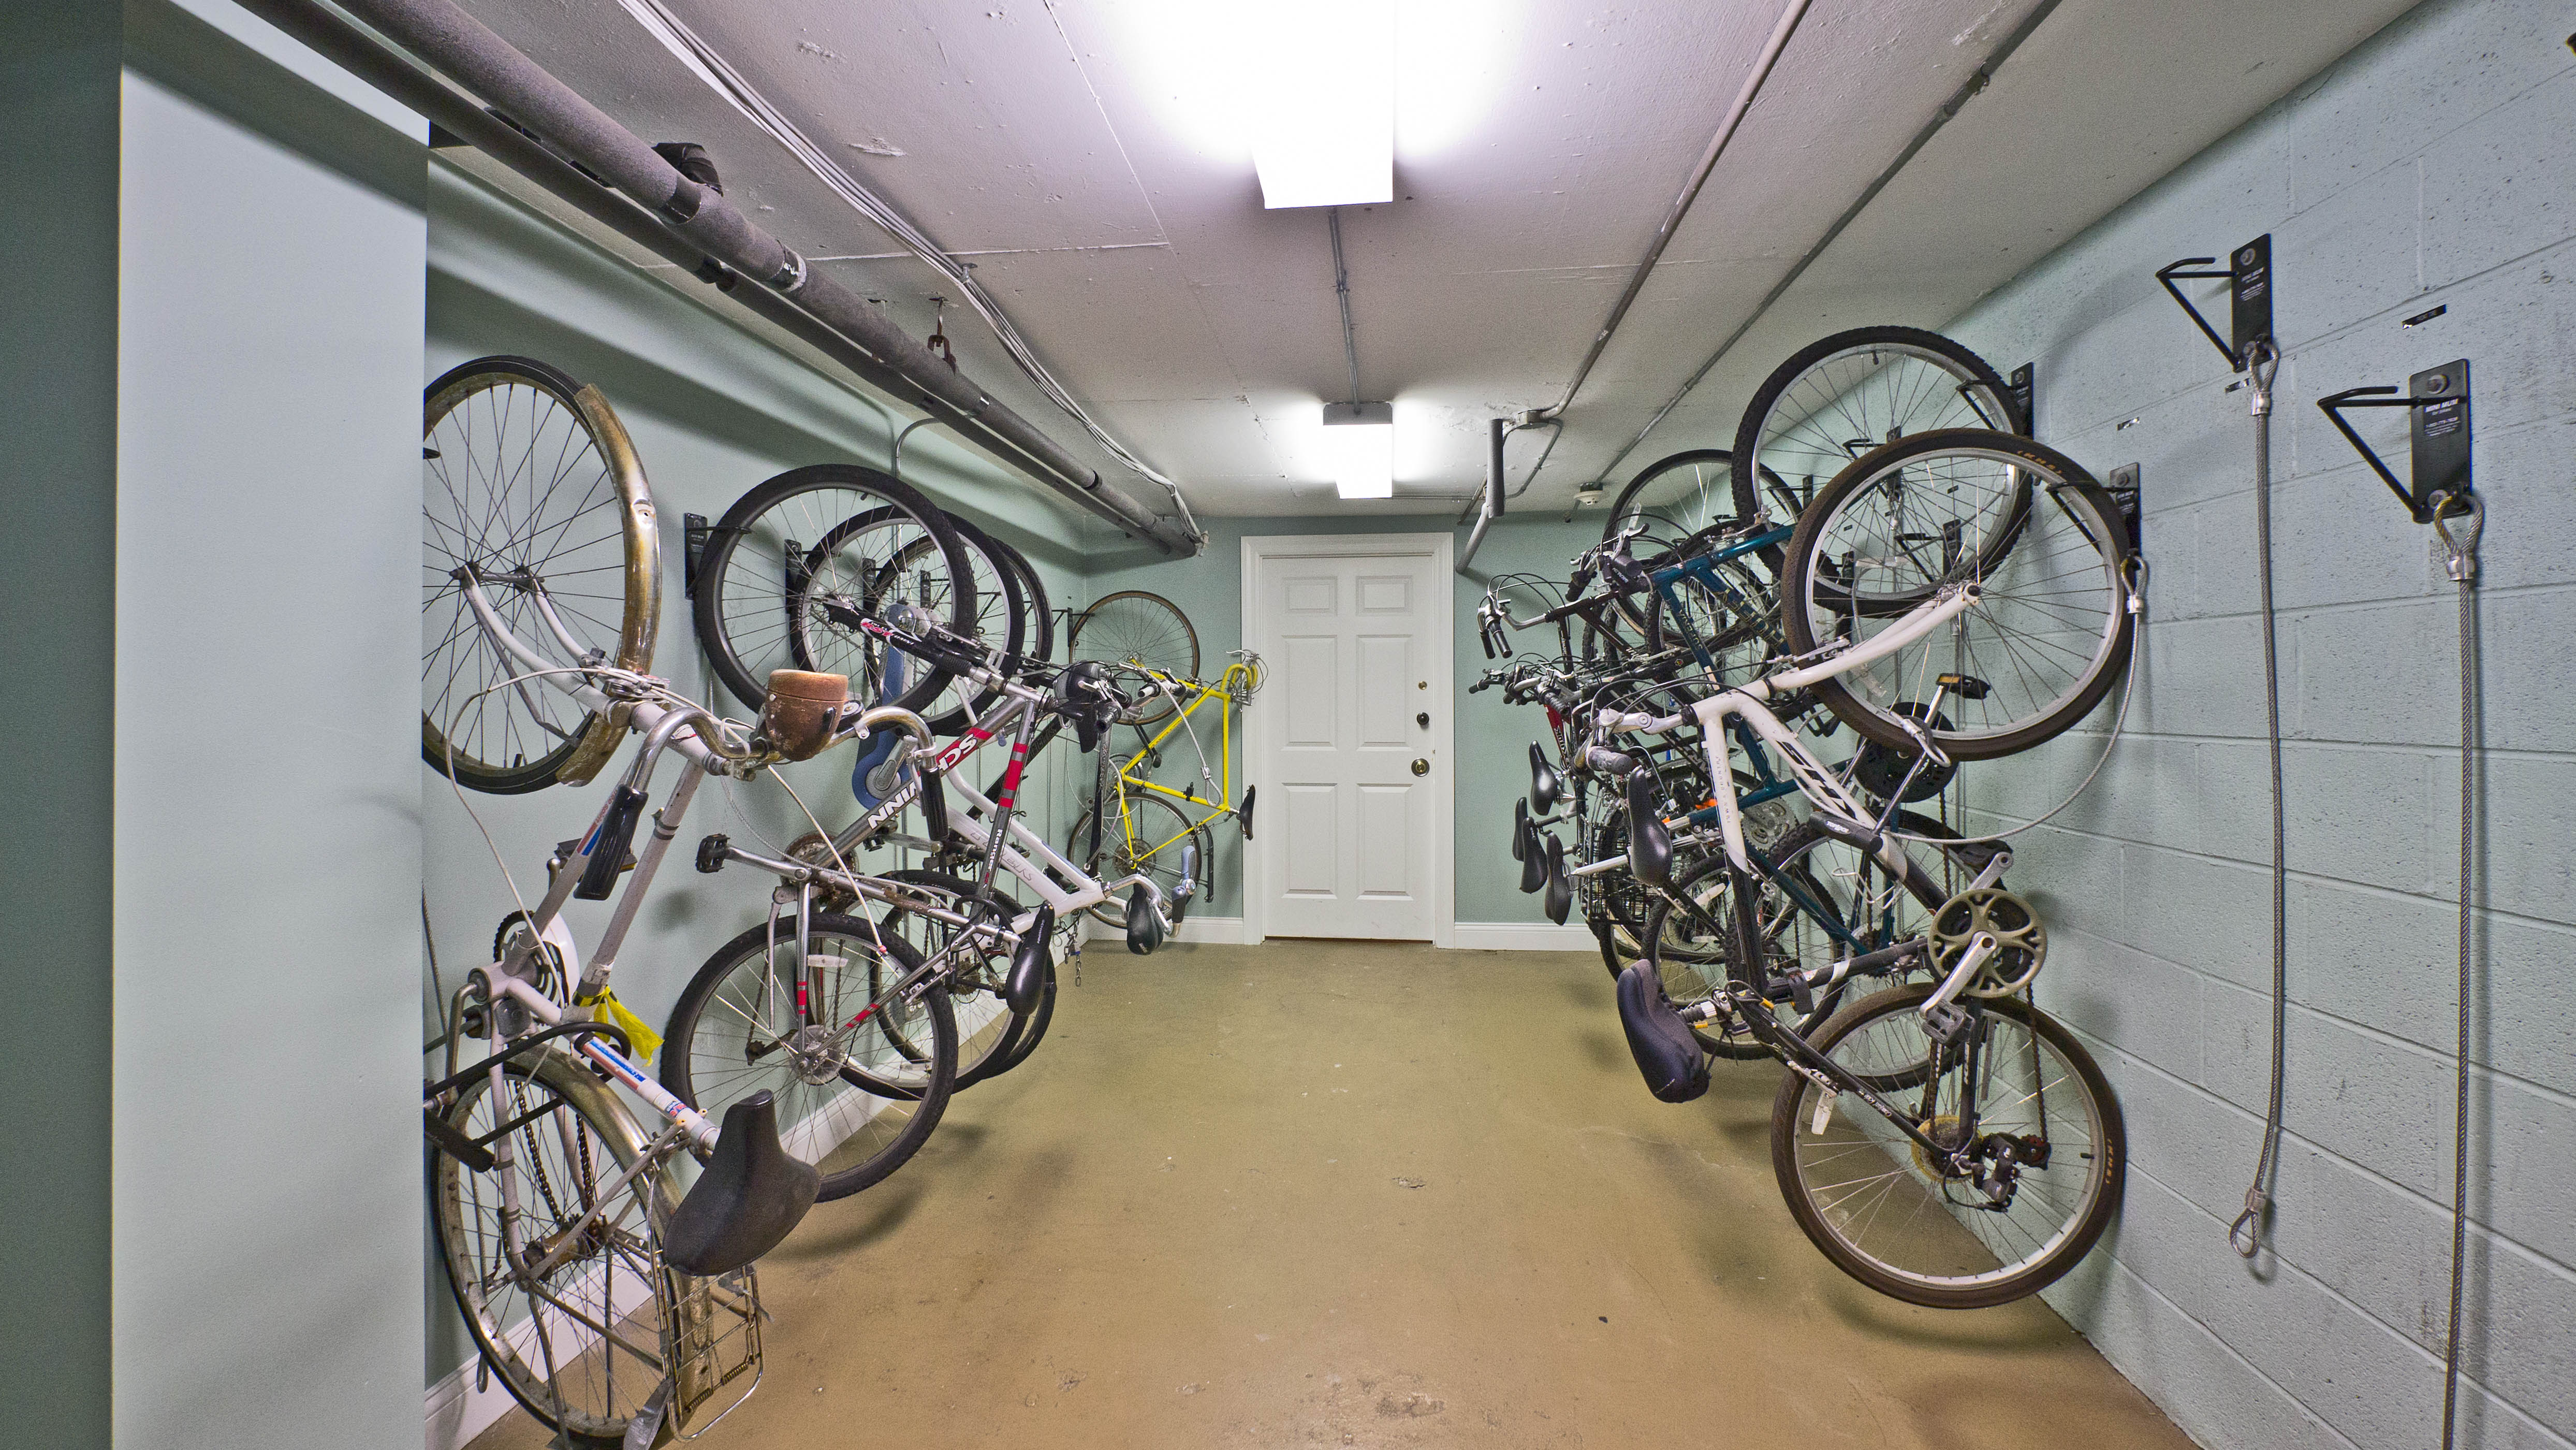 There S A Bicycle Storage